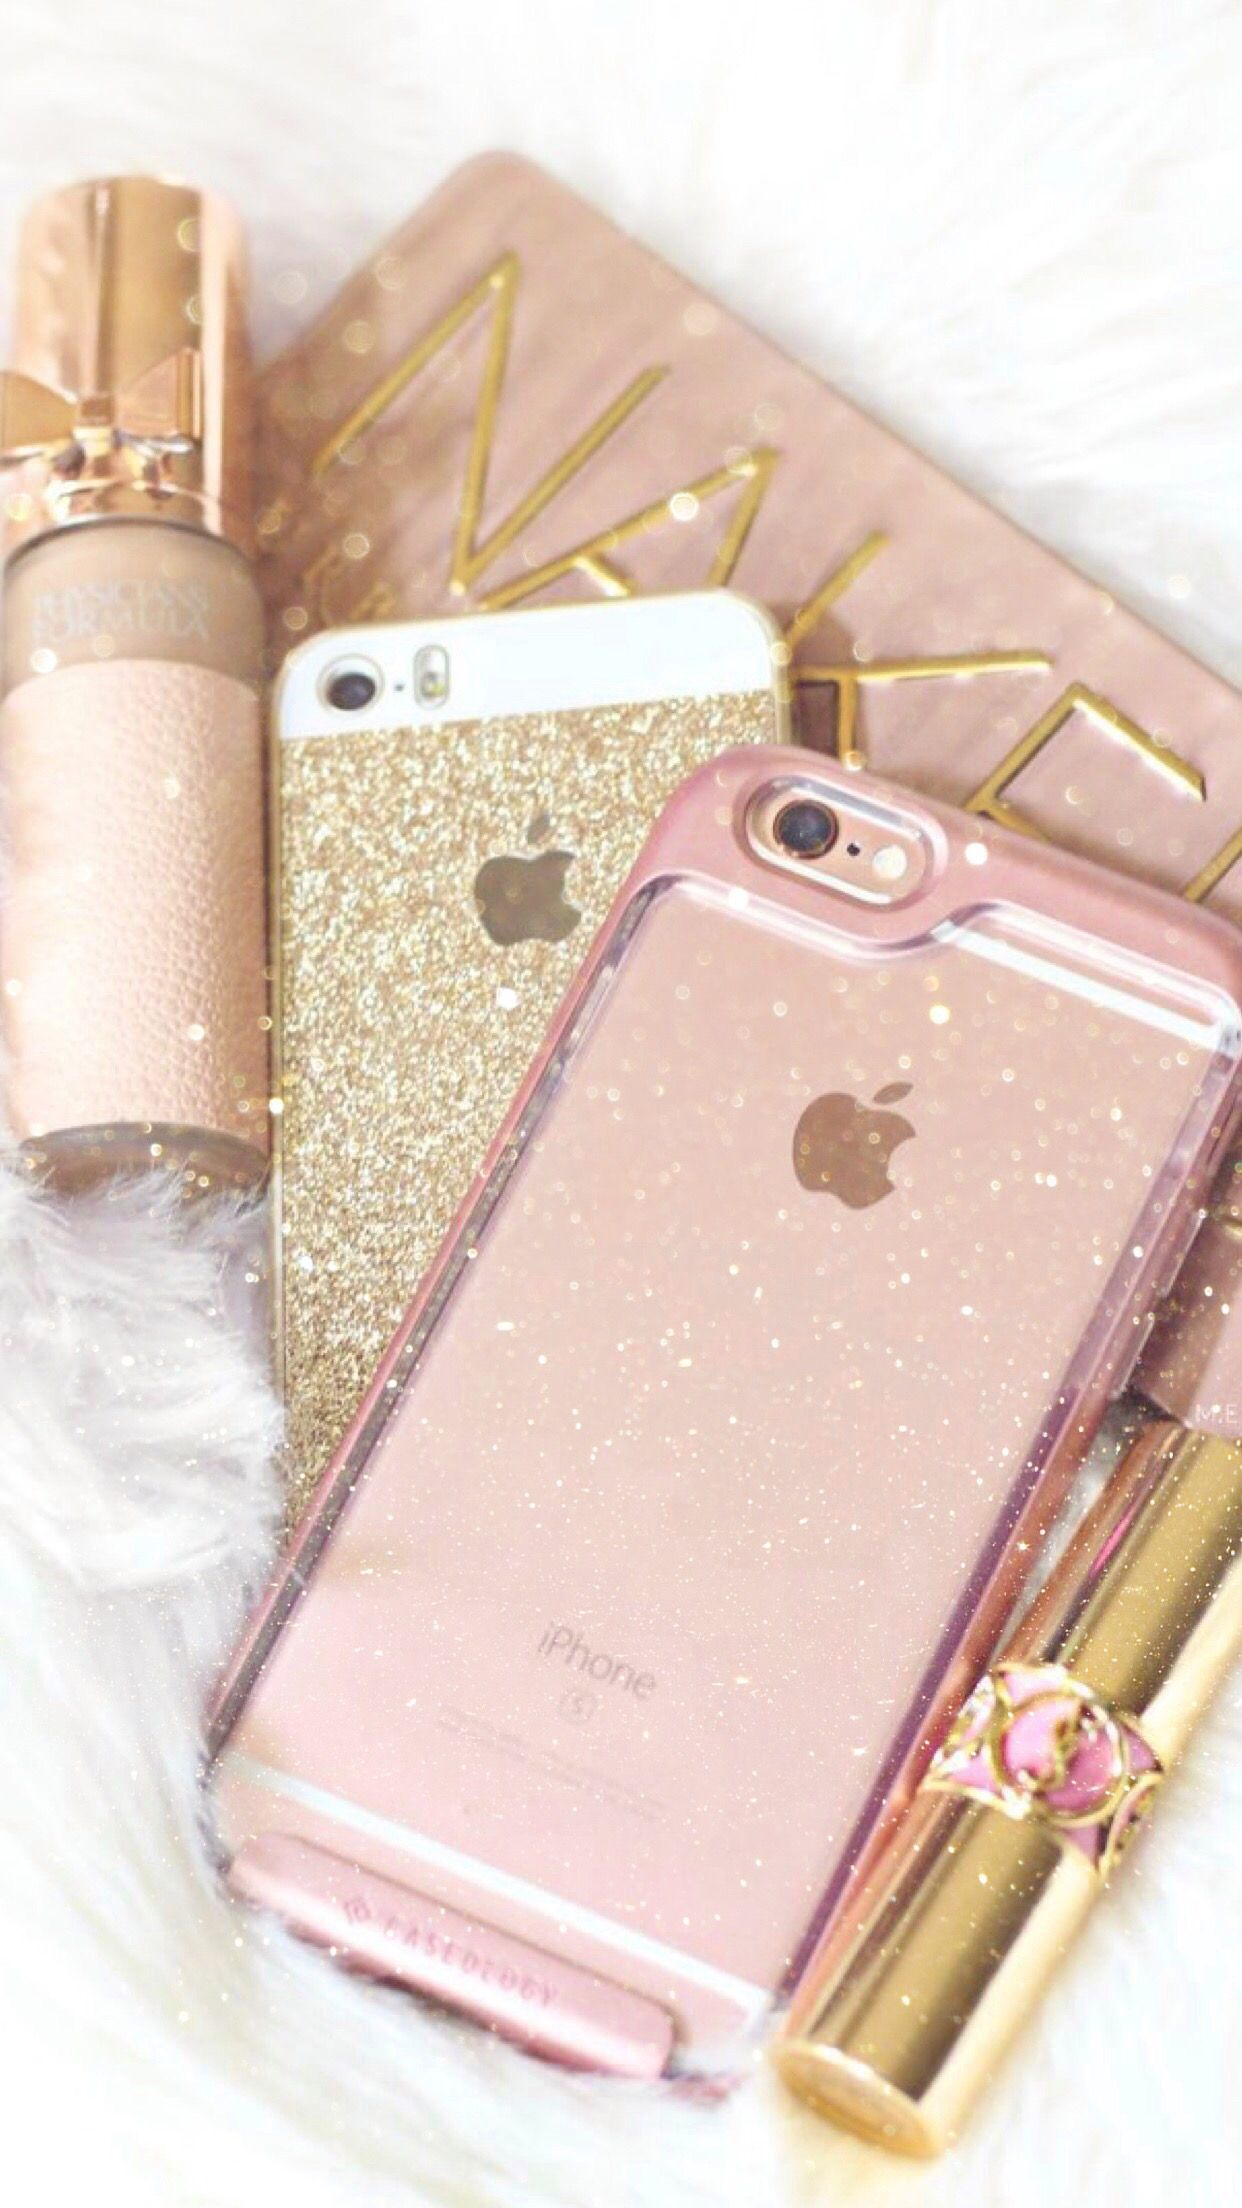 Wallpaper Iphone Android Background Hd Rose Gold Glitter Pink Iphone Girly Things Rose Gold Aesthetic